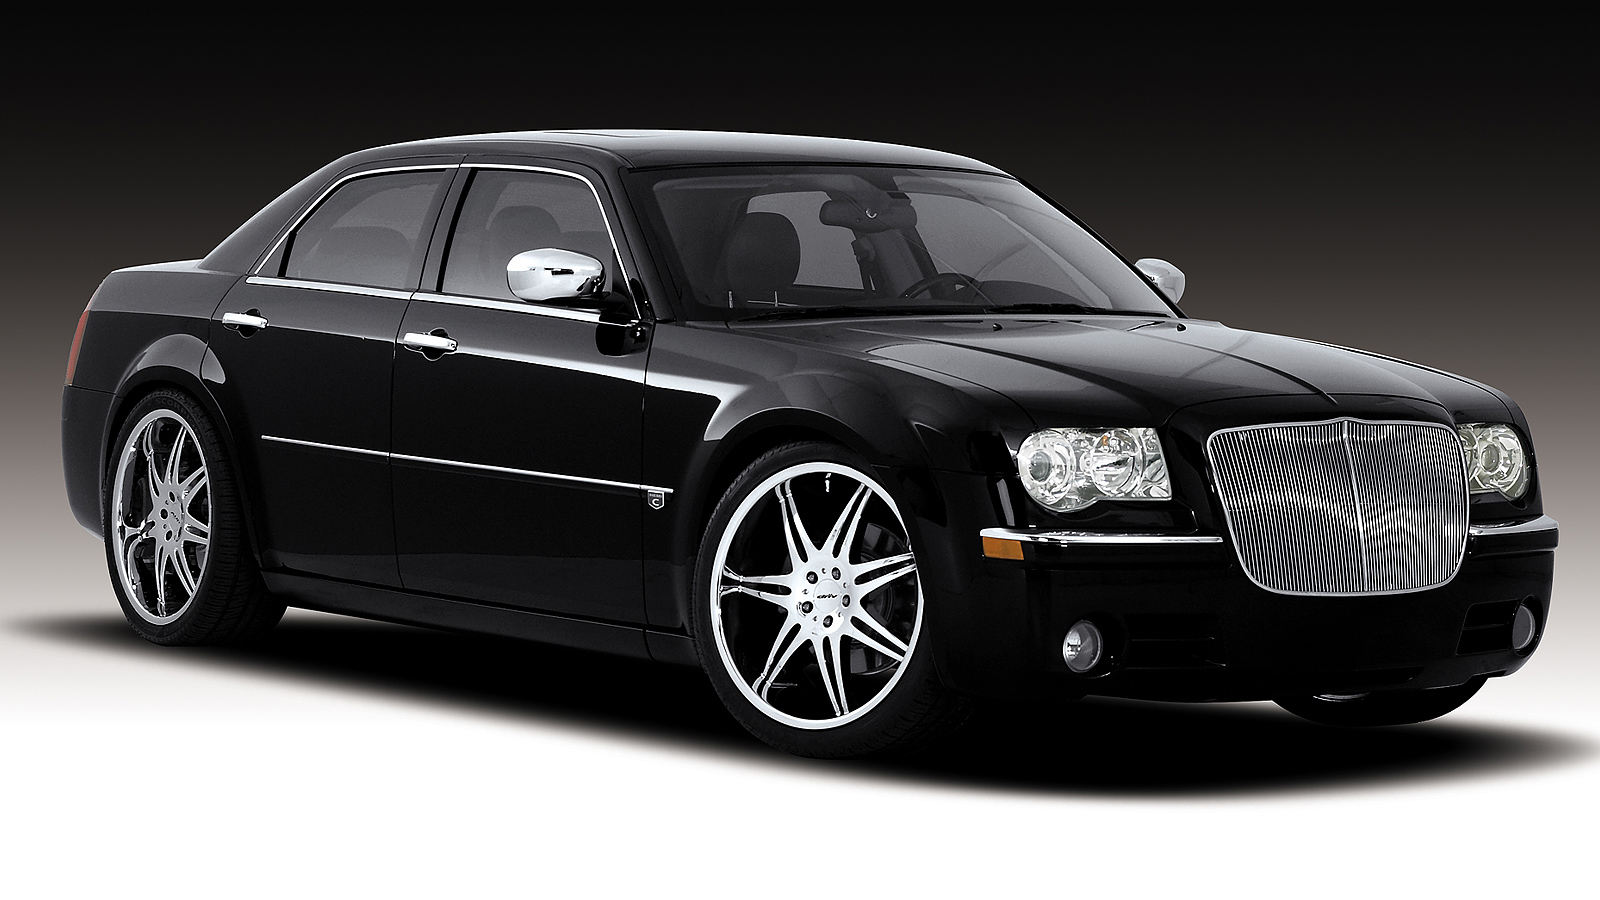 2007 chrysler 300 image 14. Black Bedroom Furniture Sets. Home Design Ideas